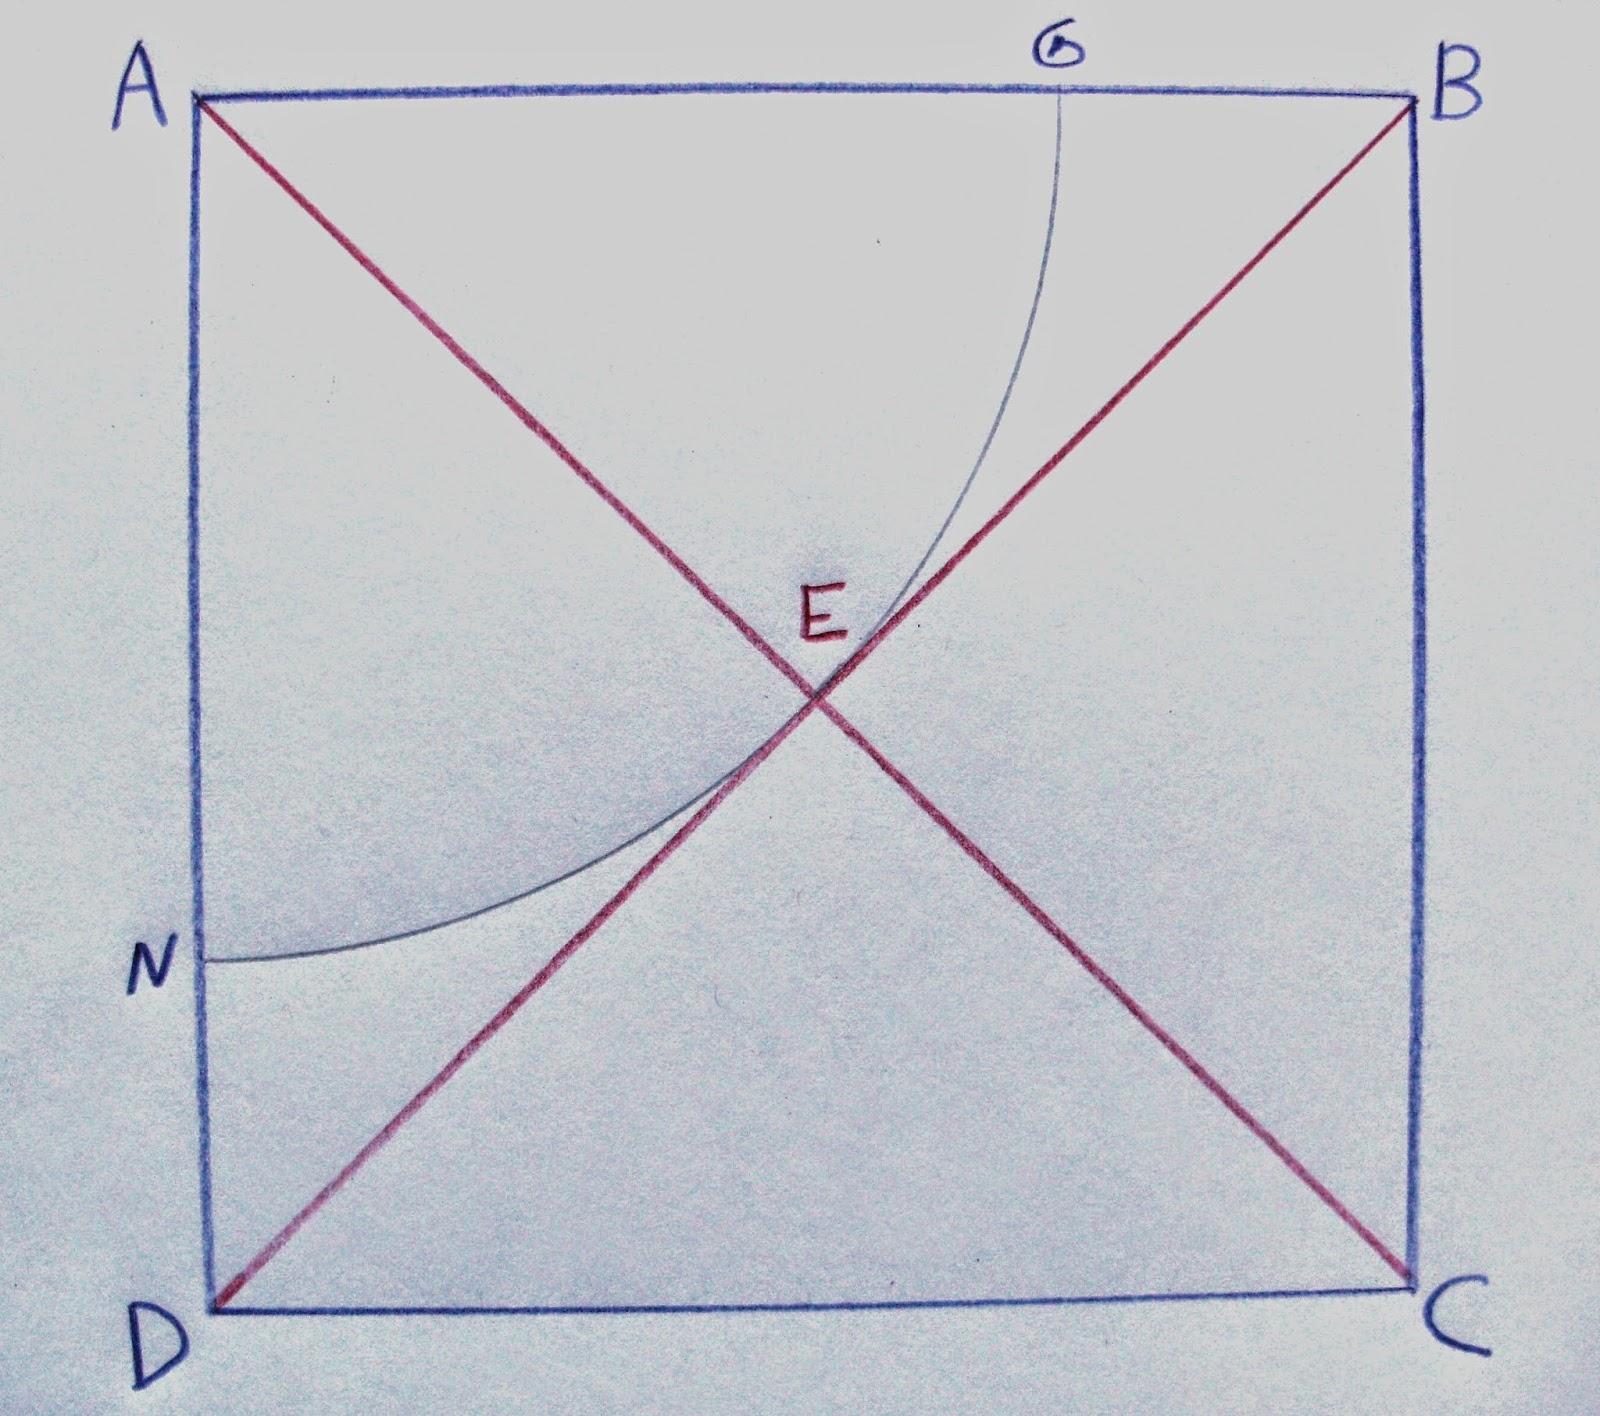 Draw Diagonals AC And BD Intersecting At E.